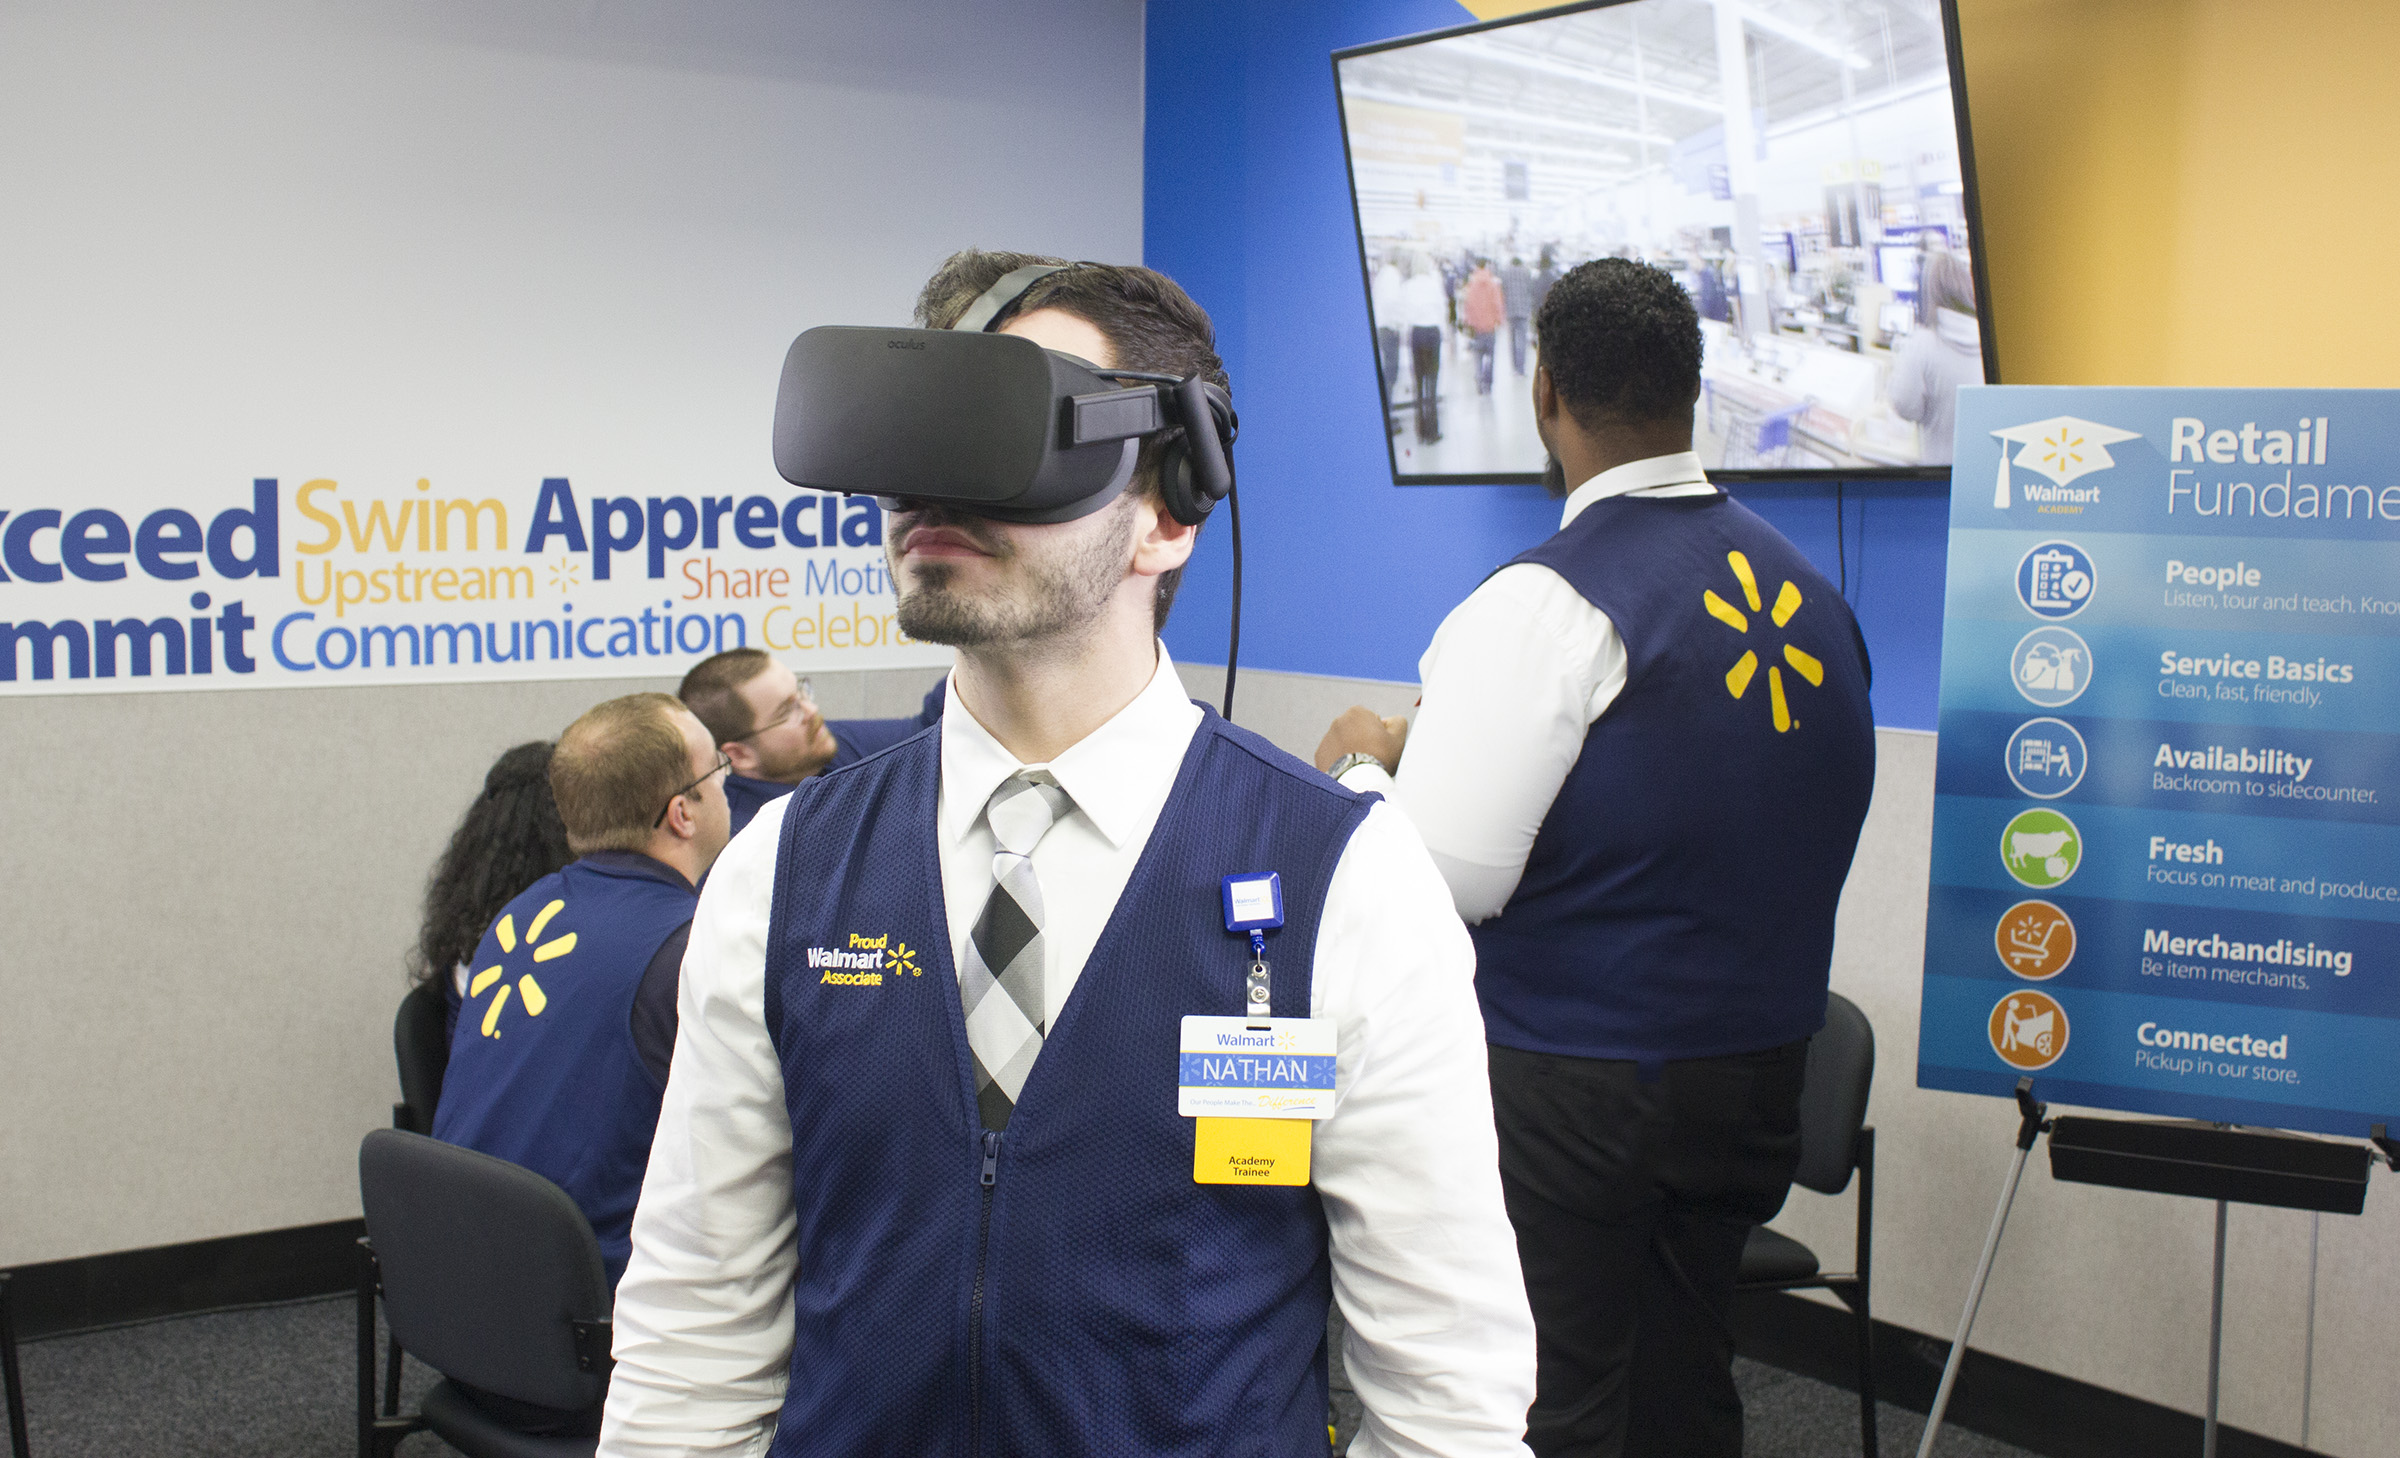 New WalMart Employee Completing Orientation in Virtual Reality.